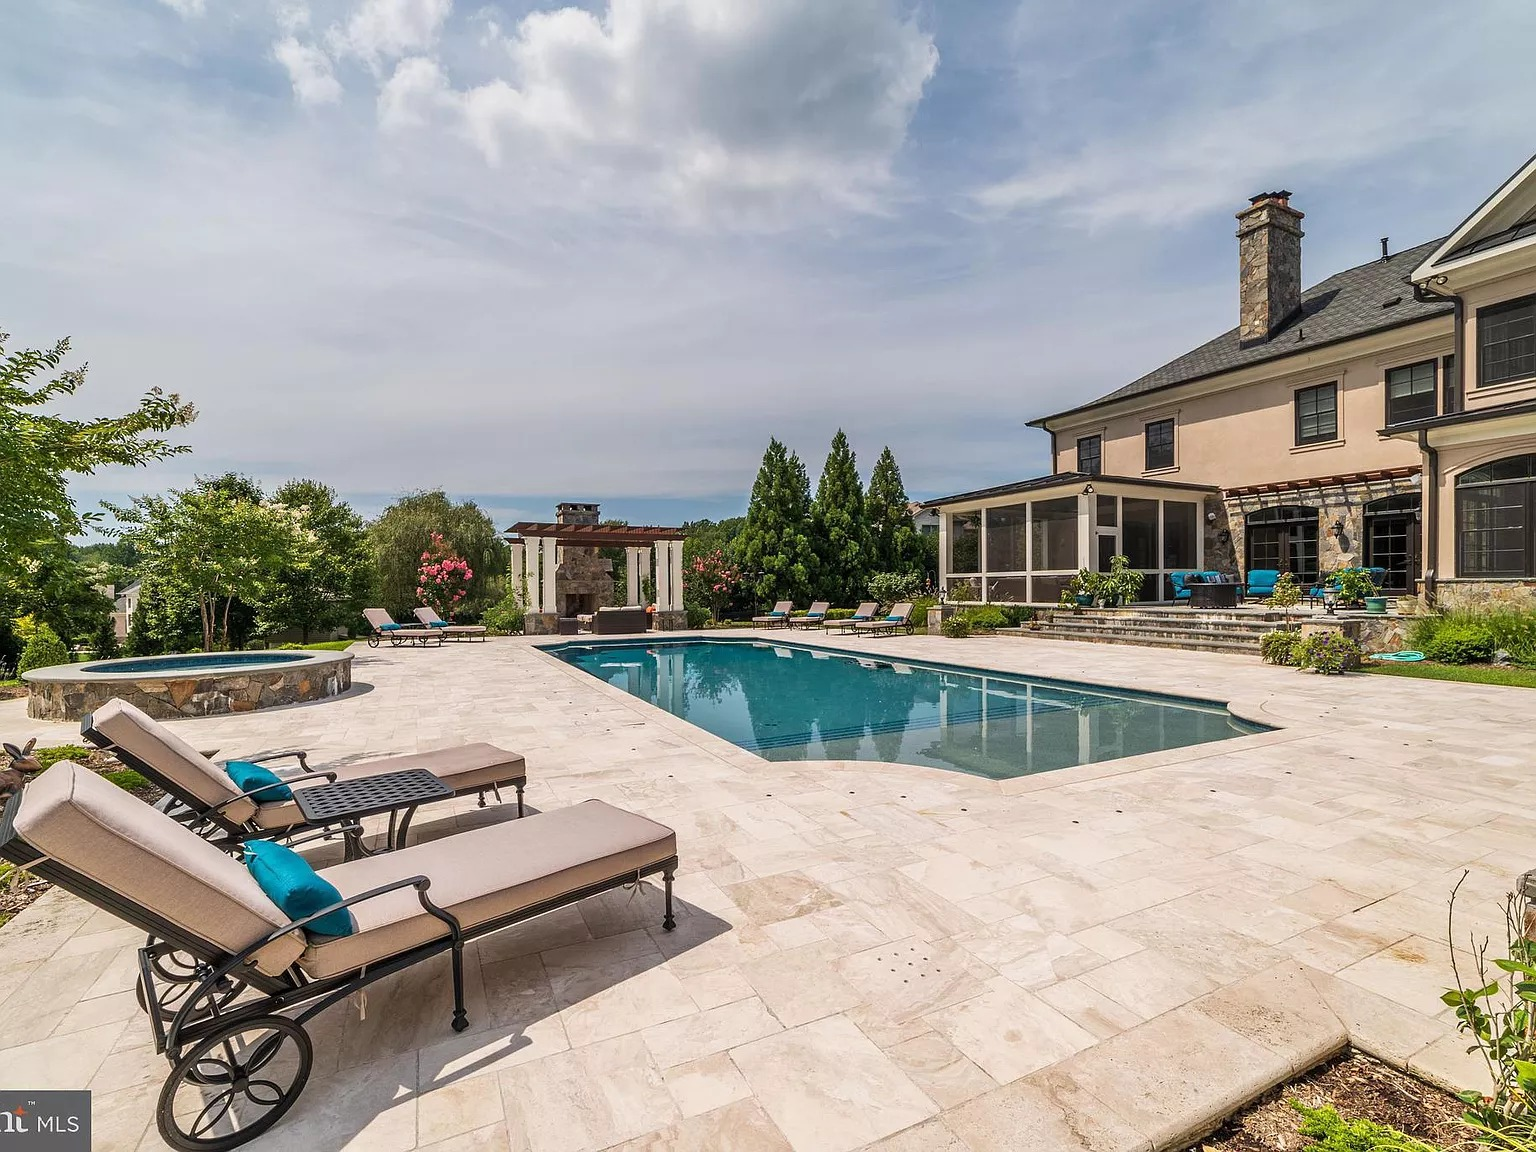 10469 Springvale Meadow Ln, Great Falls, VA 22066 - $4,275,000 home for sale, house images, photos and pics gallery